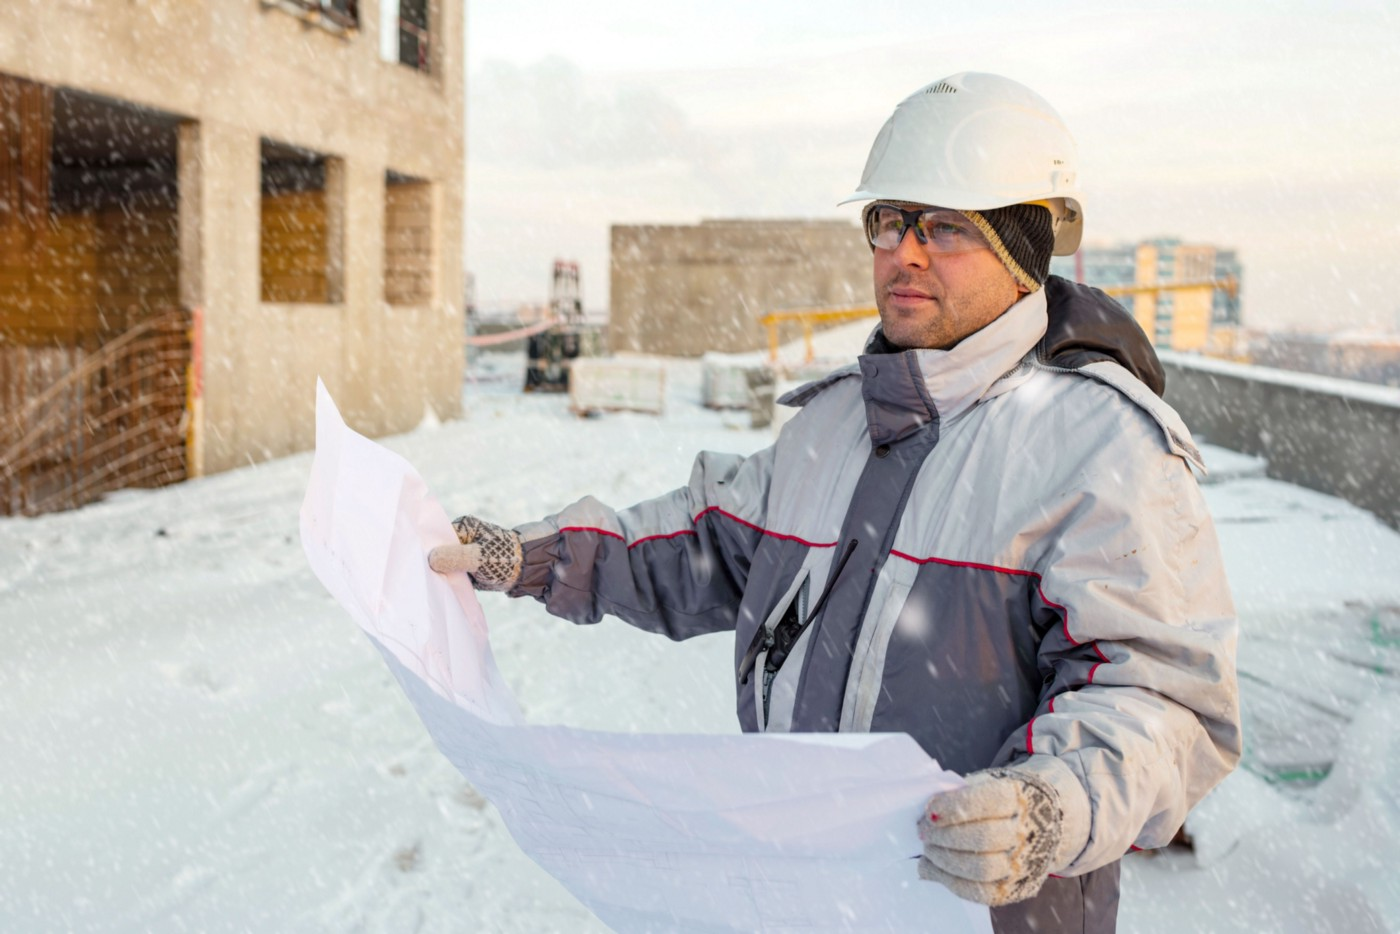 A civil engineer is holding up blueprints while in snowy weather, determining how they'd want to use their concrete admixtures.